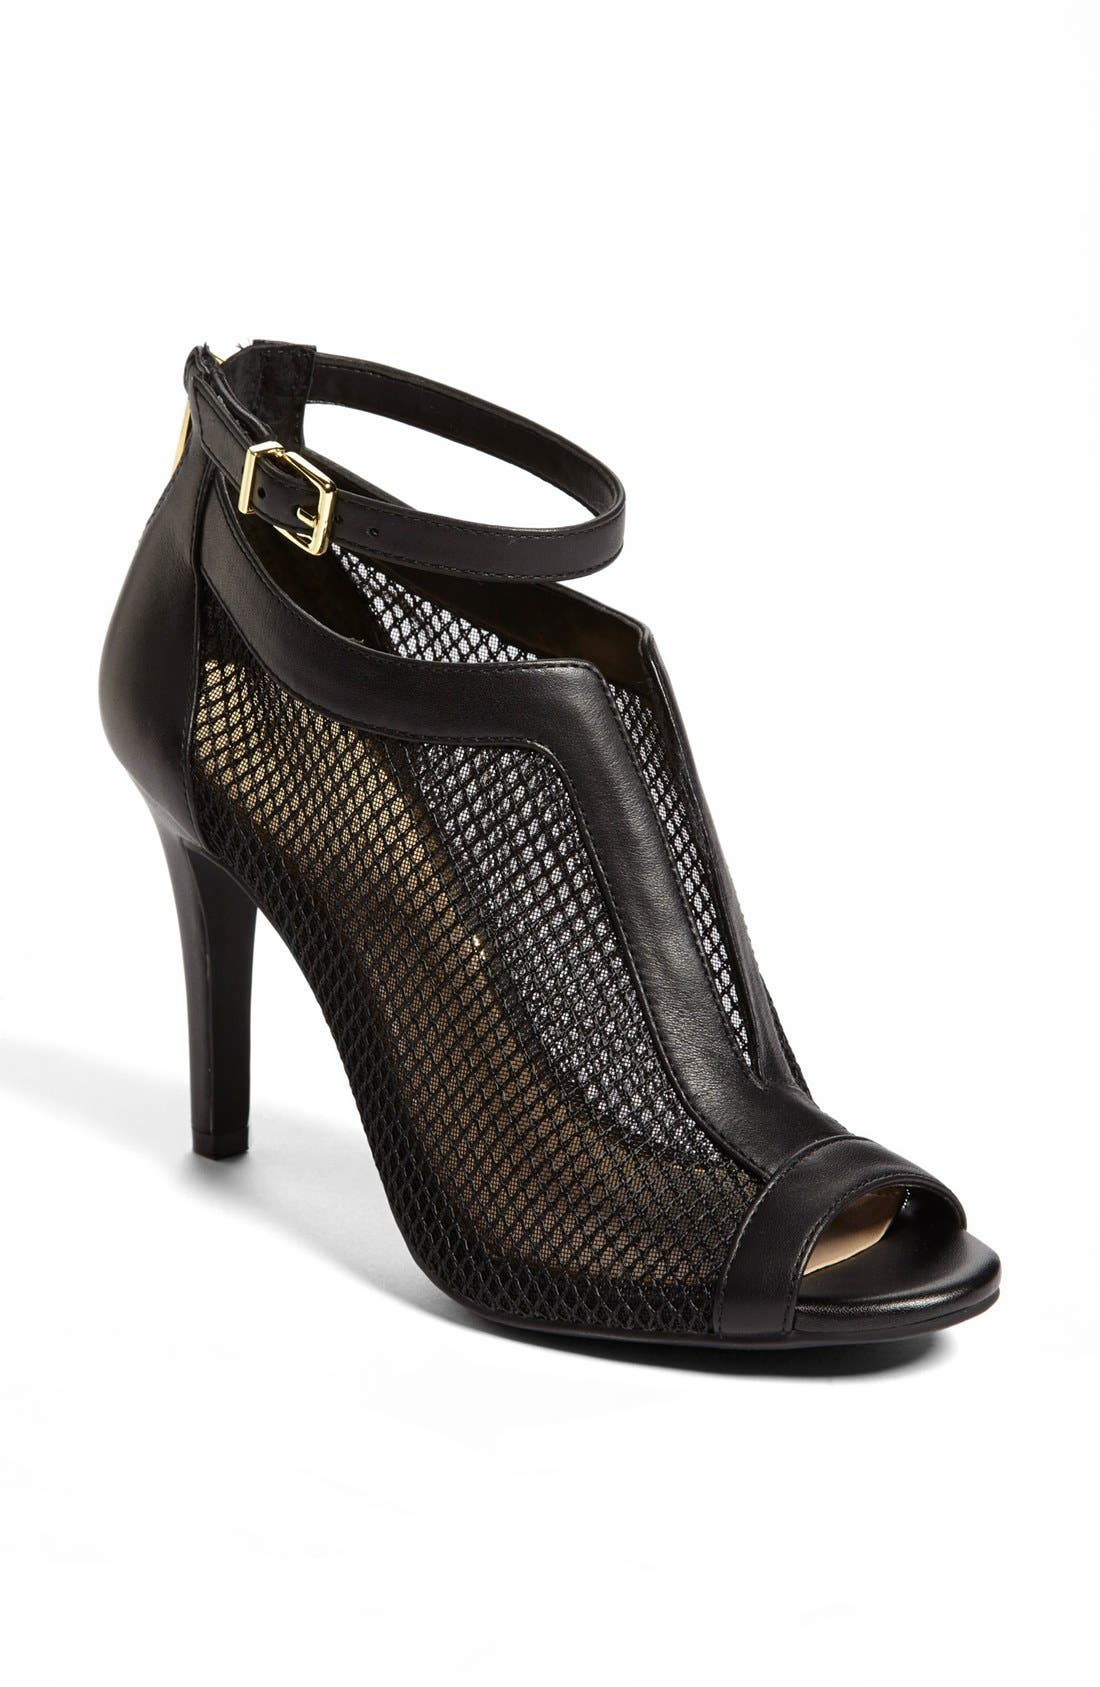 Alternate Image 1 Selected - Jessica Simpson 'Rossii' Ankle Strap Shootie